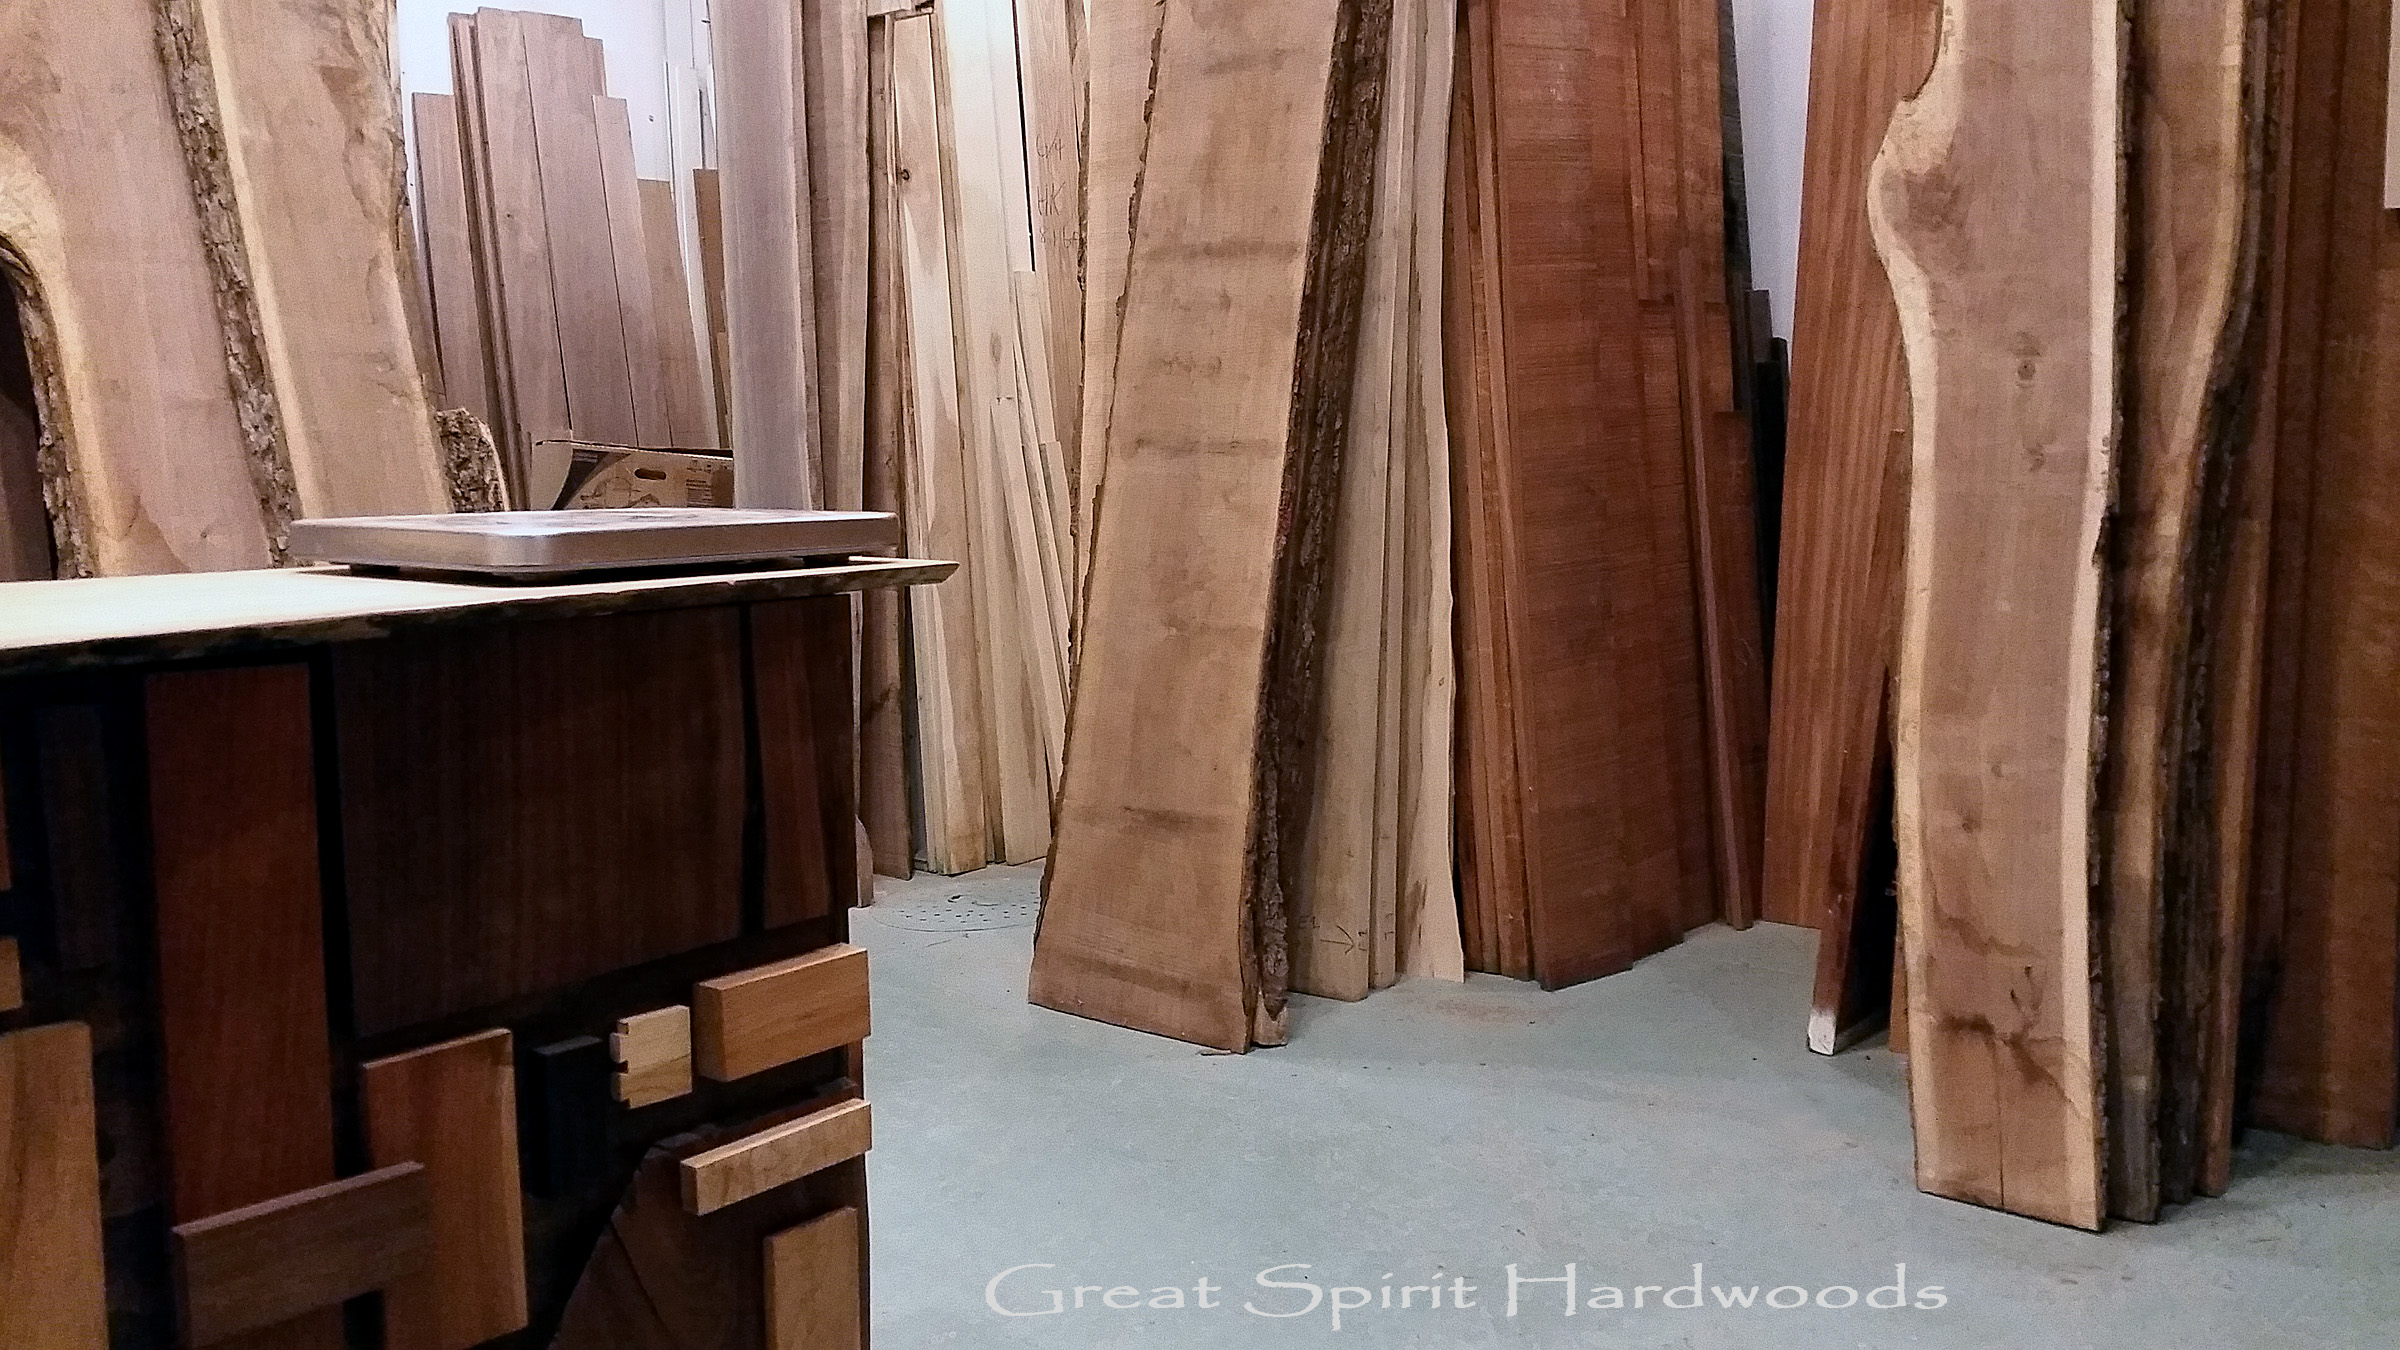 Hardwood Lumber Store, Great Spirit Hardwoods in Dundee, IL